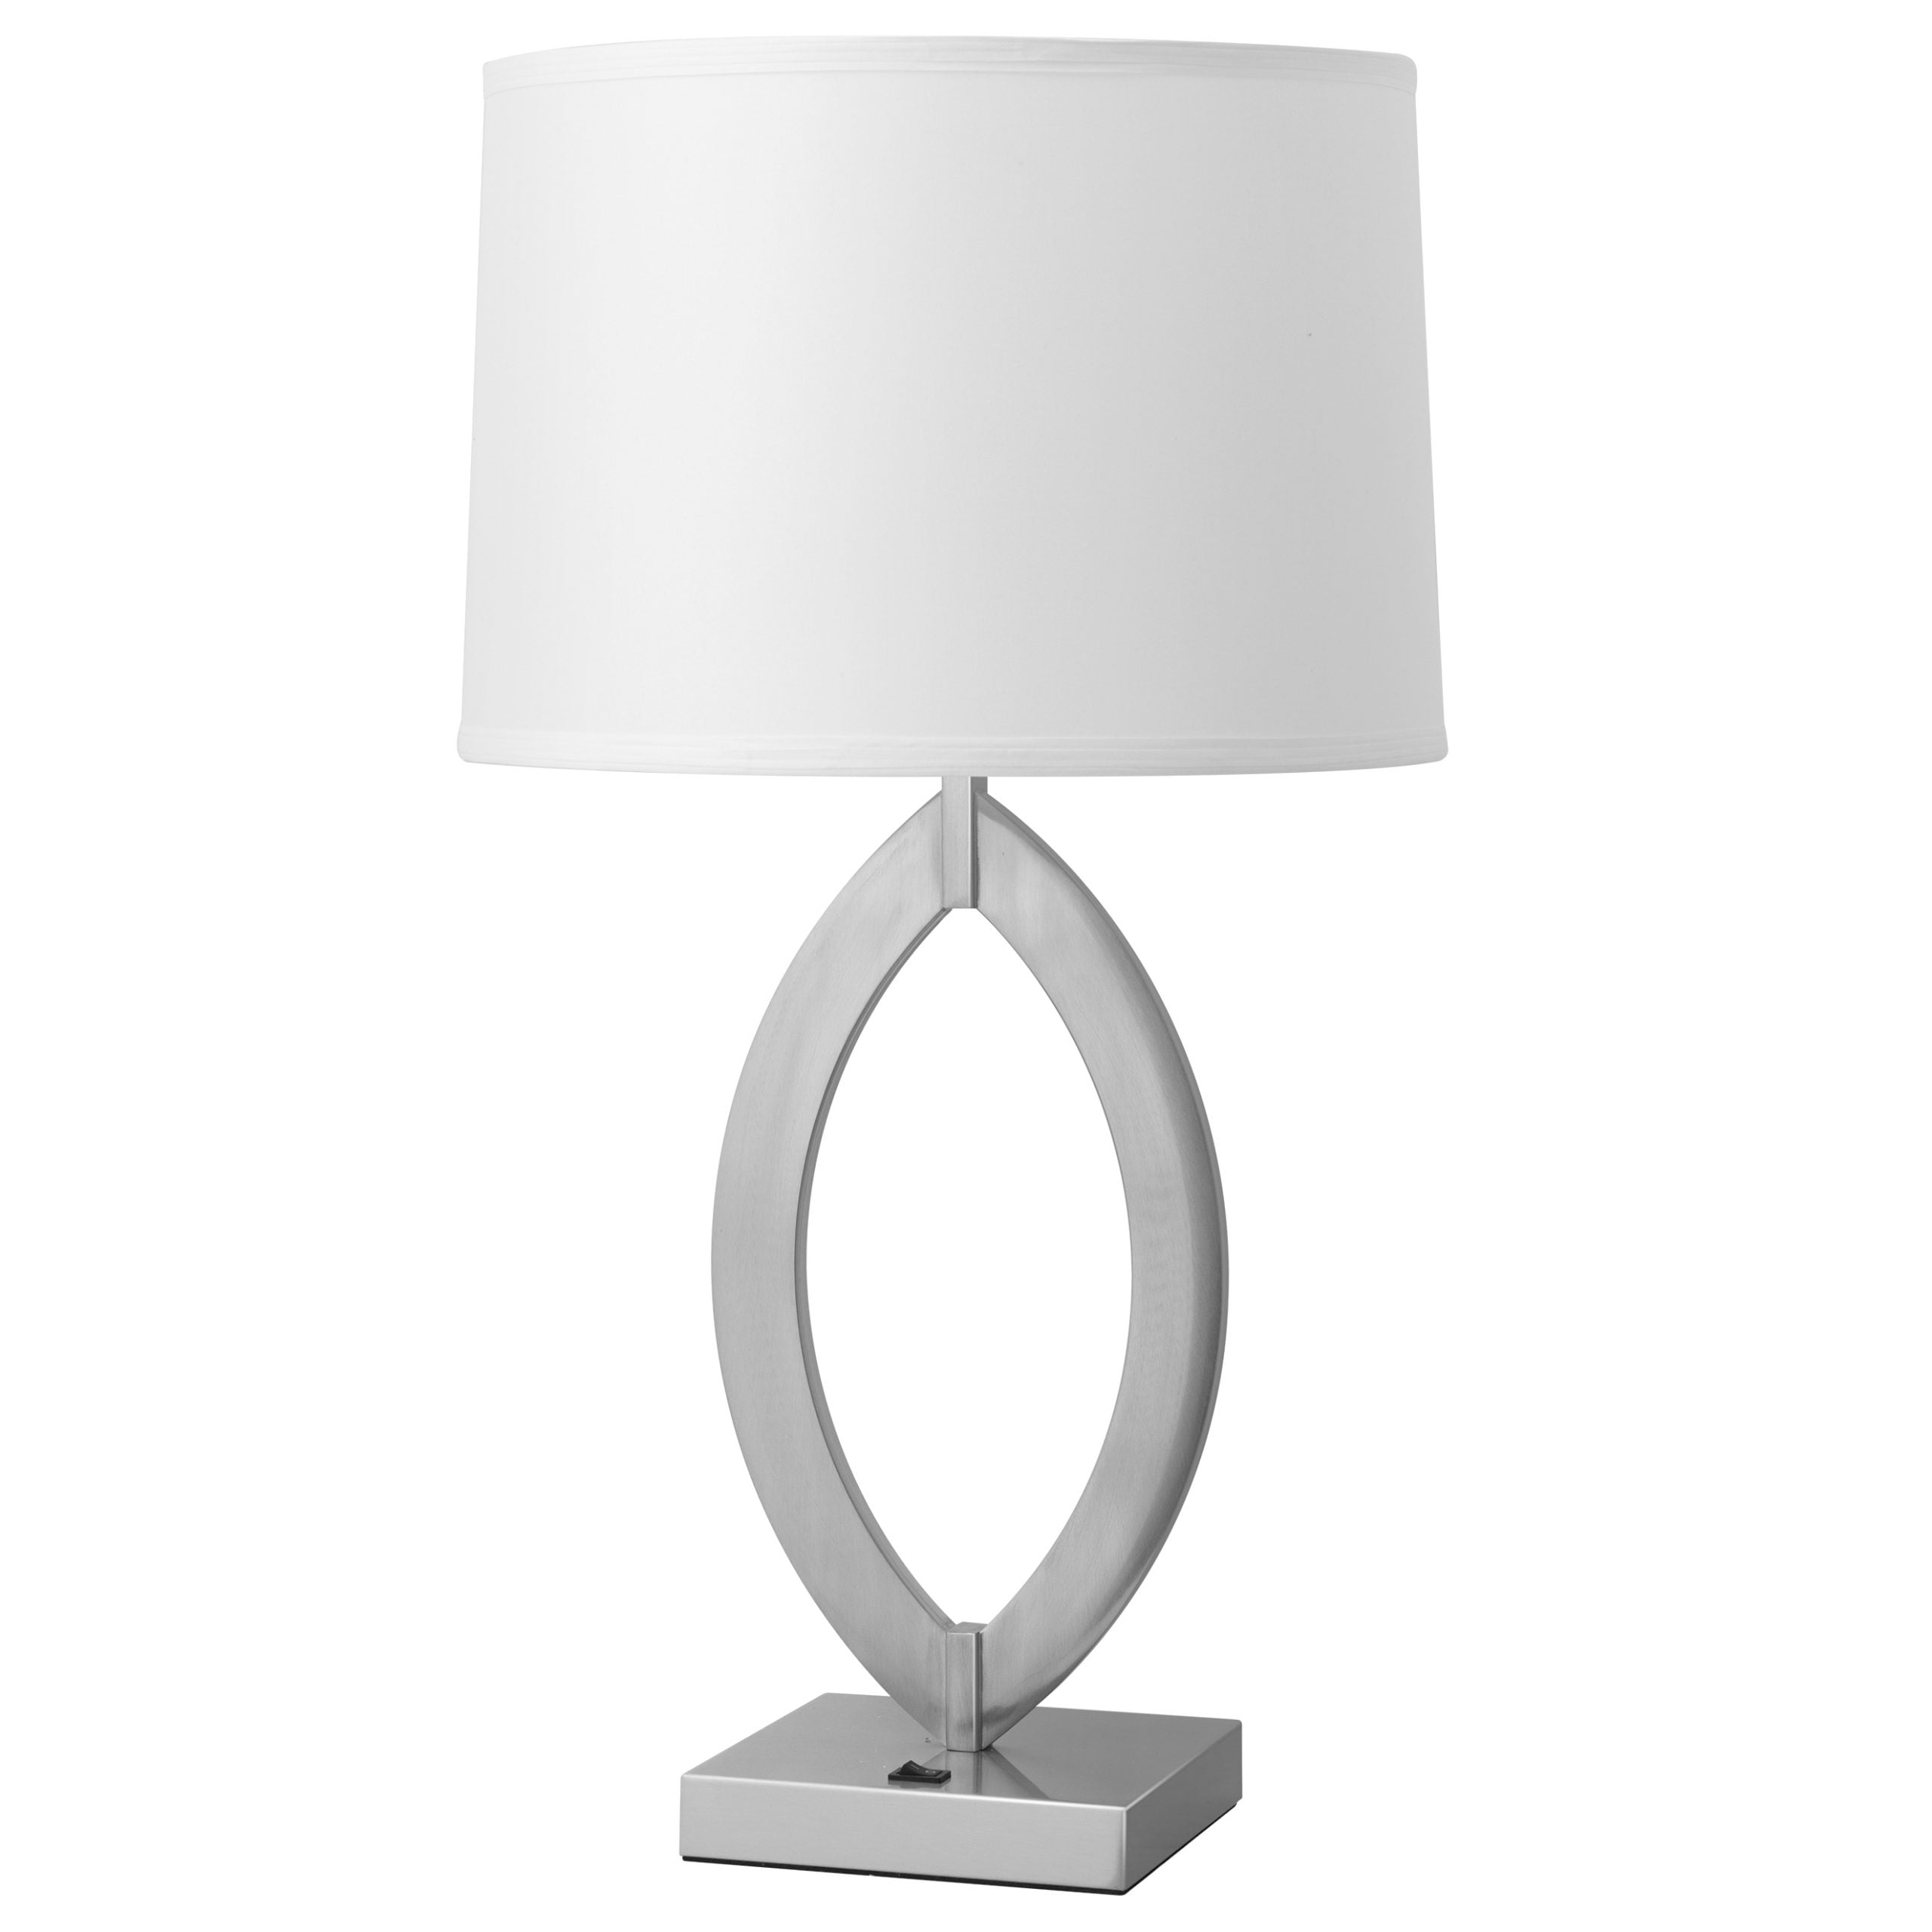 Breeze End Table Lamp